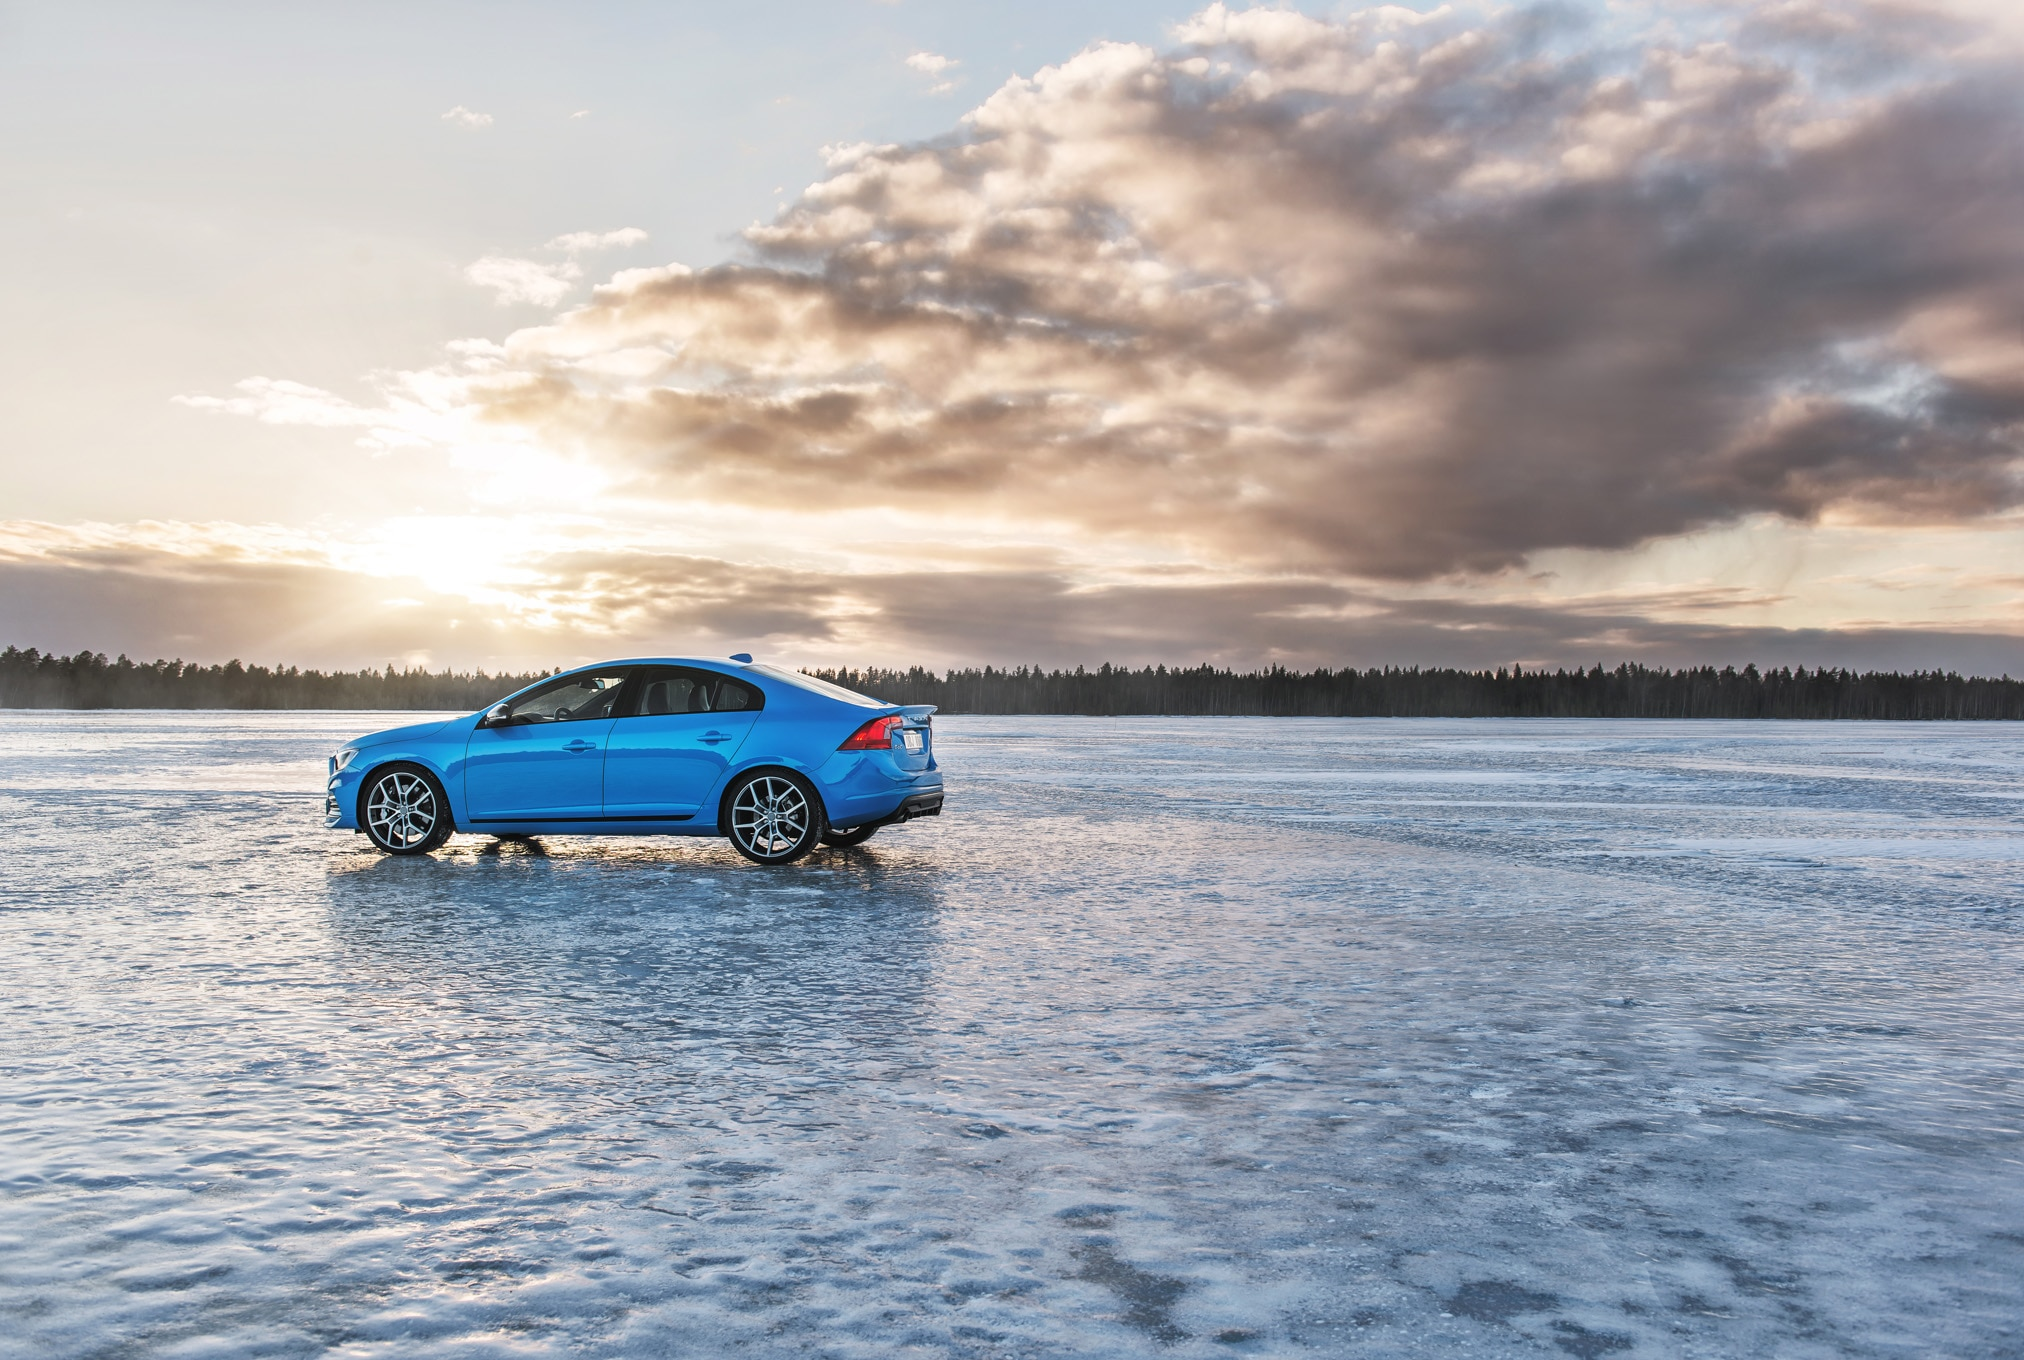 polestar volvo review and california hills tame the reviews